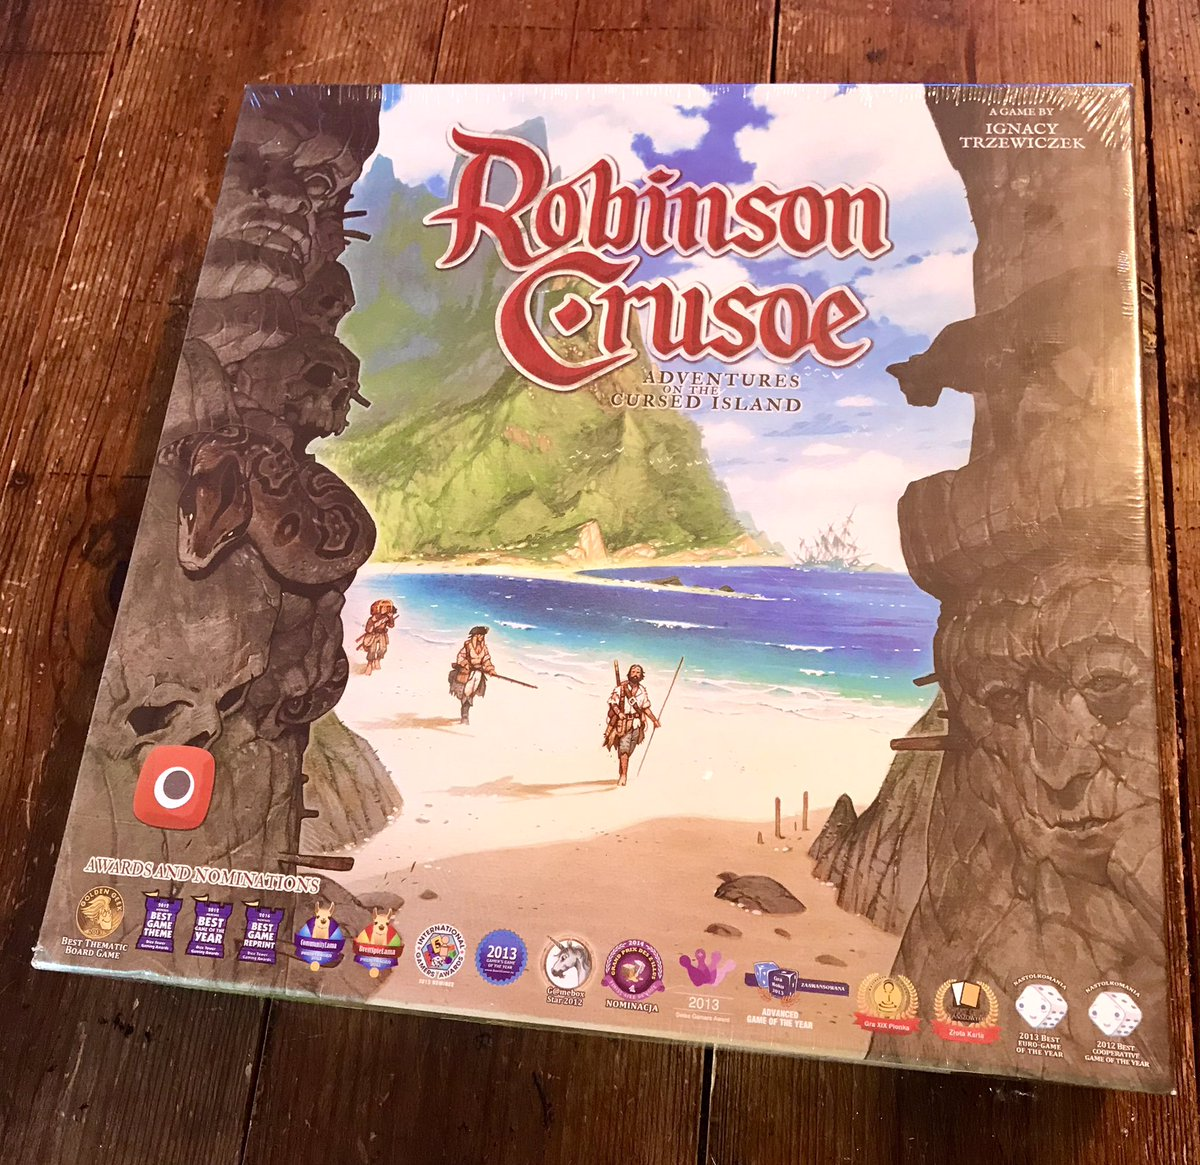 First play! Lovely art and cute pieces - but are hidden dangers lurking! We are going in!! @trzewik #boardgamersoftwitter #boardgames #boardgamegeek #nerd #tabletop #tabletopgamer #tabletopgames #boardgamephotos #sundayvibes #sunday